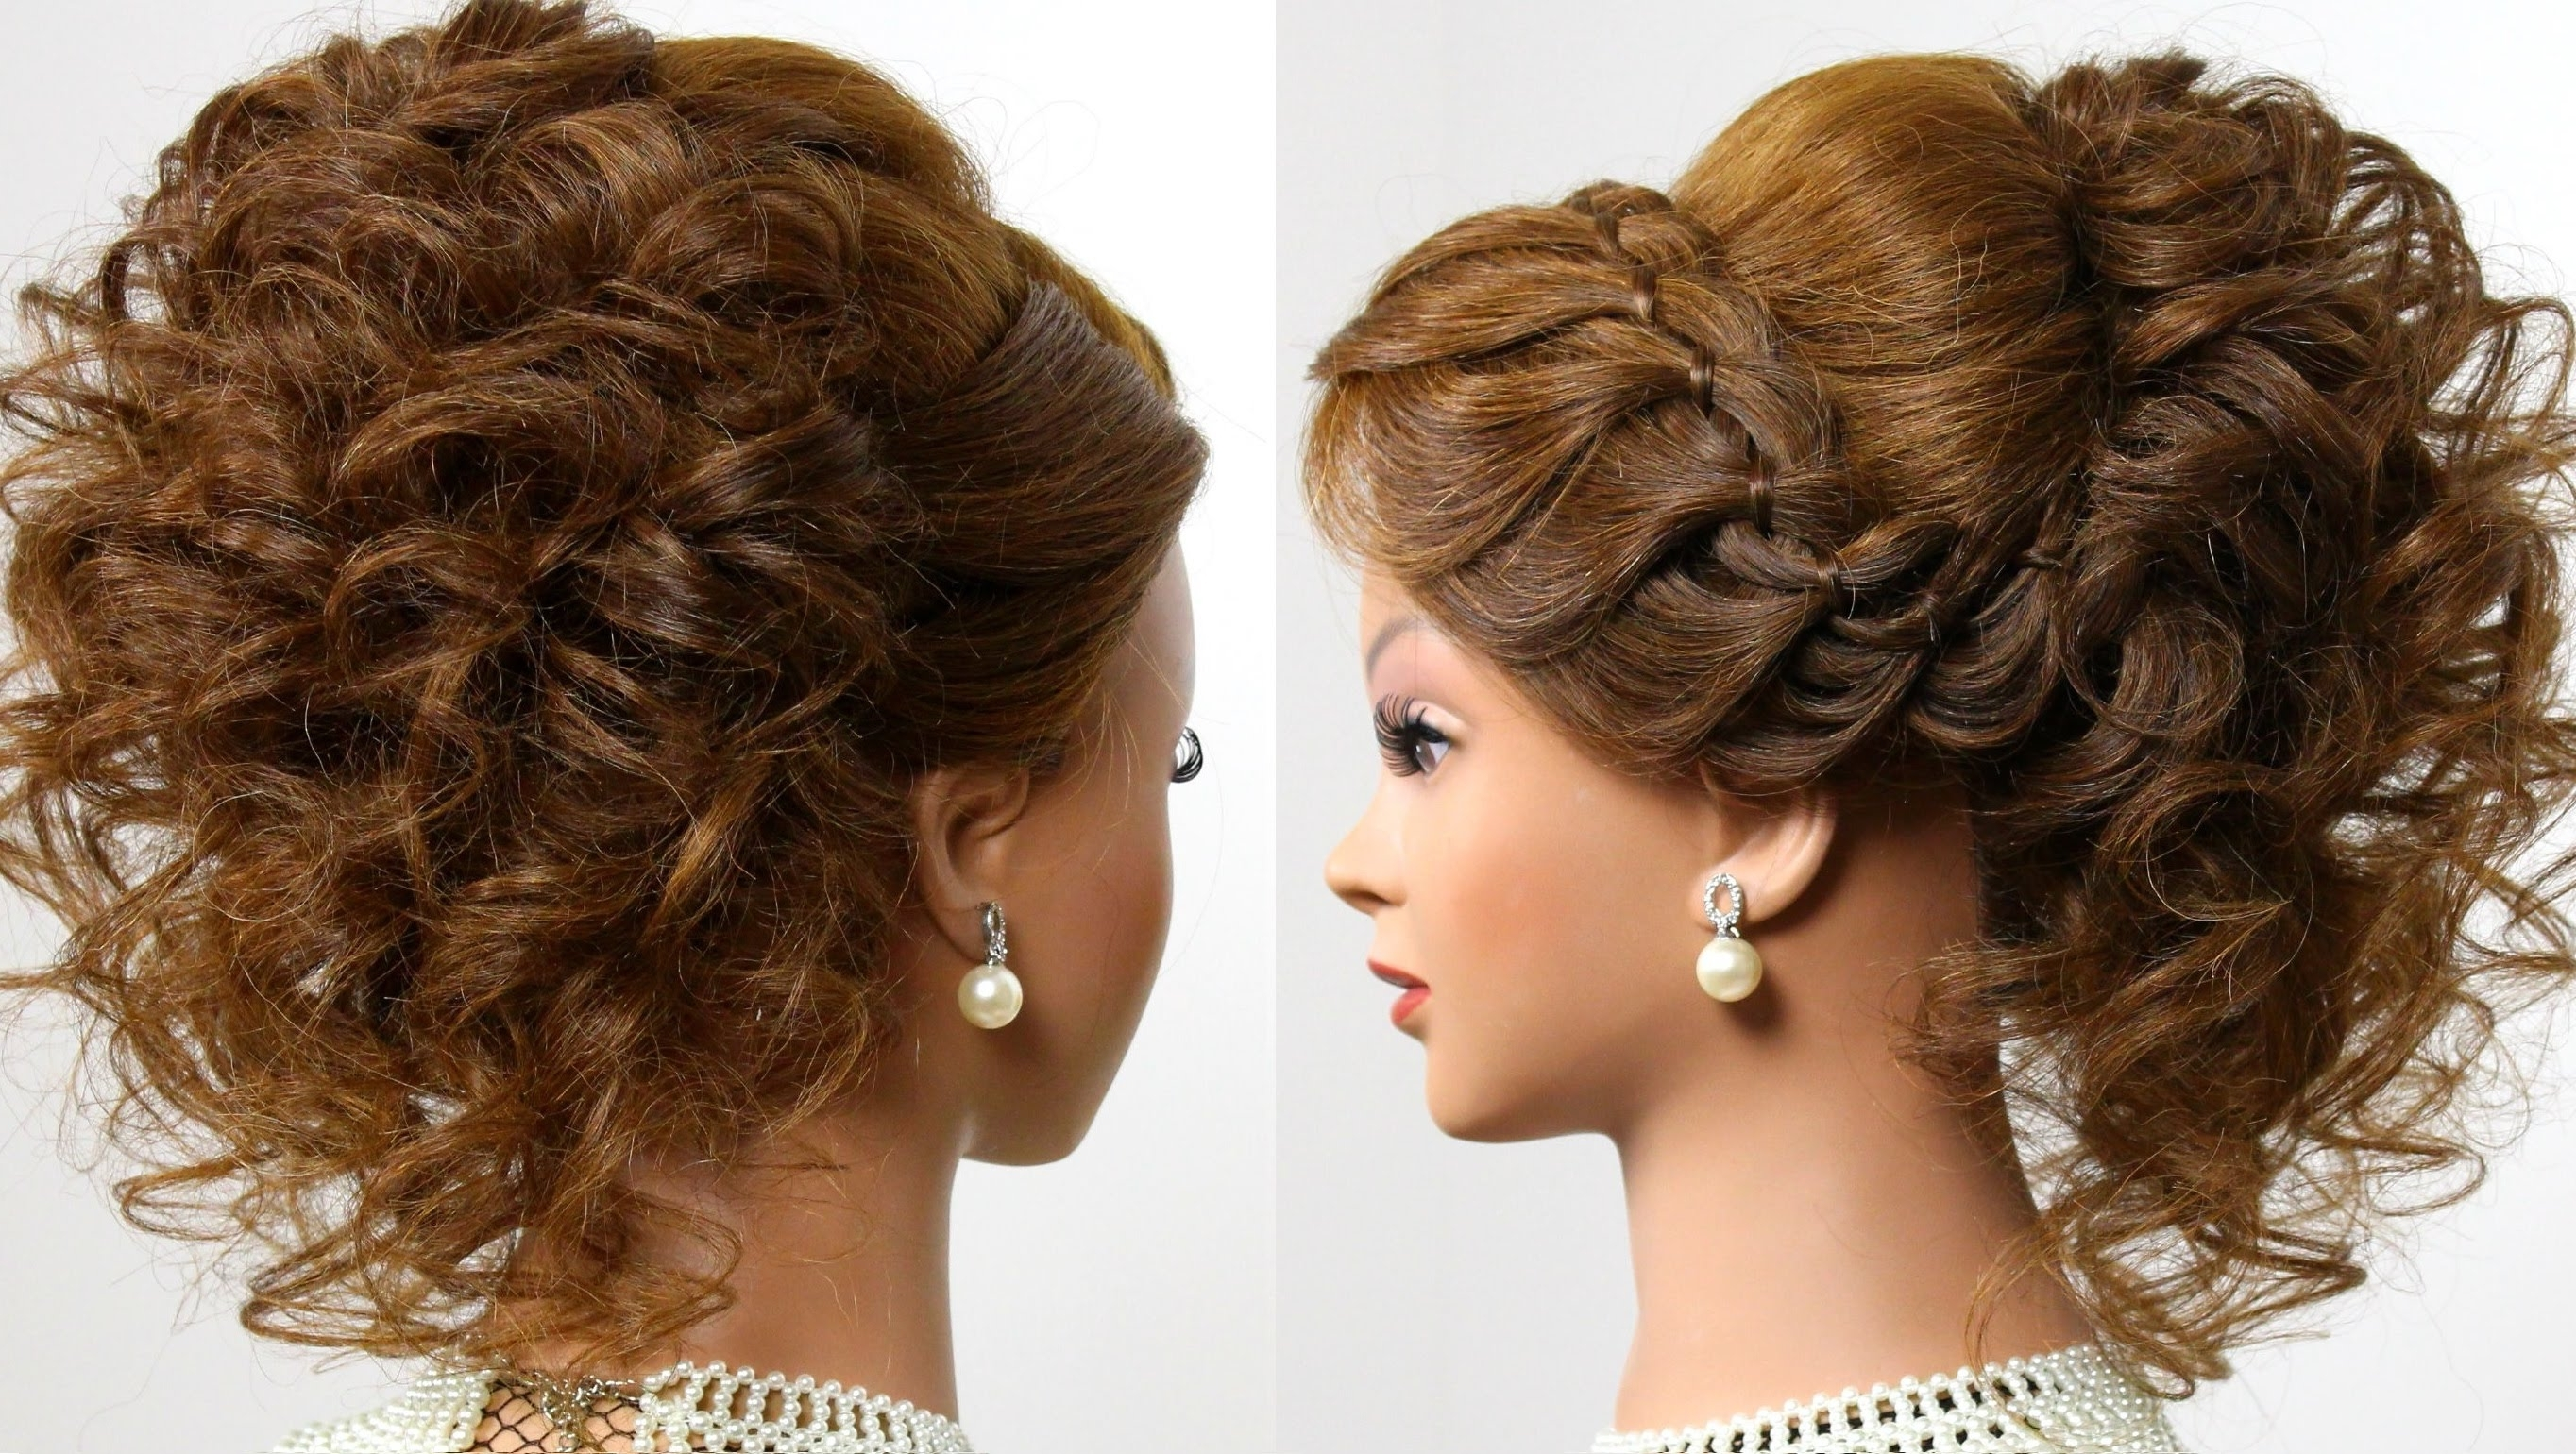 Curly Wedding Prom Hairstyle For Long Hair Sensational Romantic In Prom Updo Hairstyles For Long Hair (View 11 of 15)